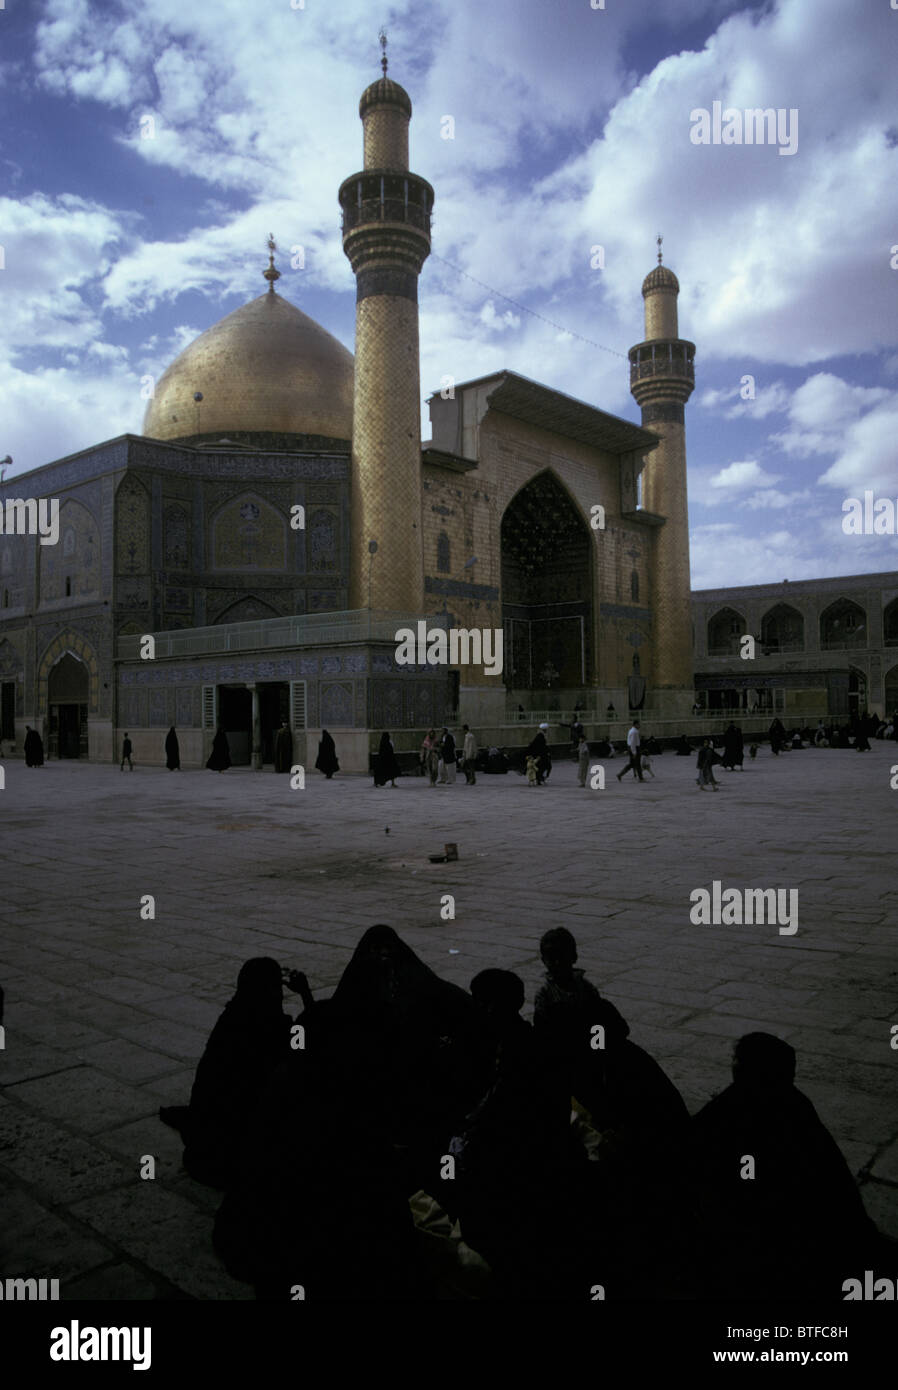 Maula Ali Shrine Wallpaper: Imam Ali Stock Photos & Imam Ali Stock Images